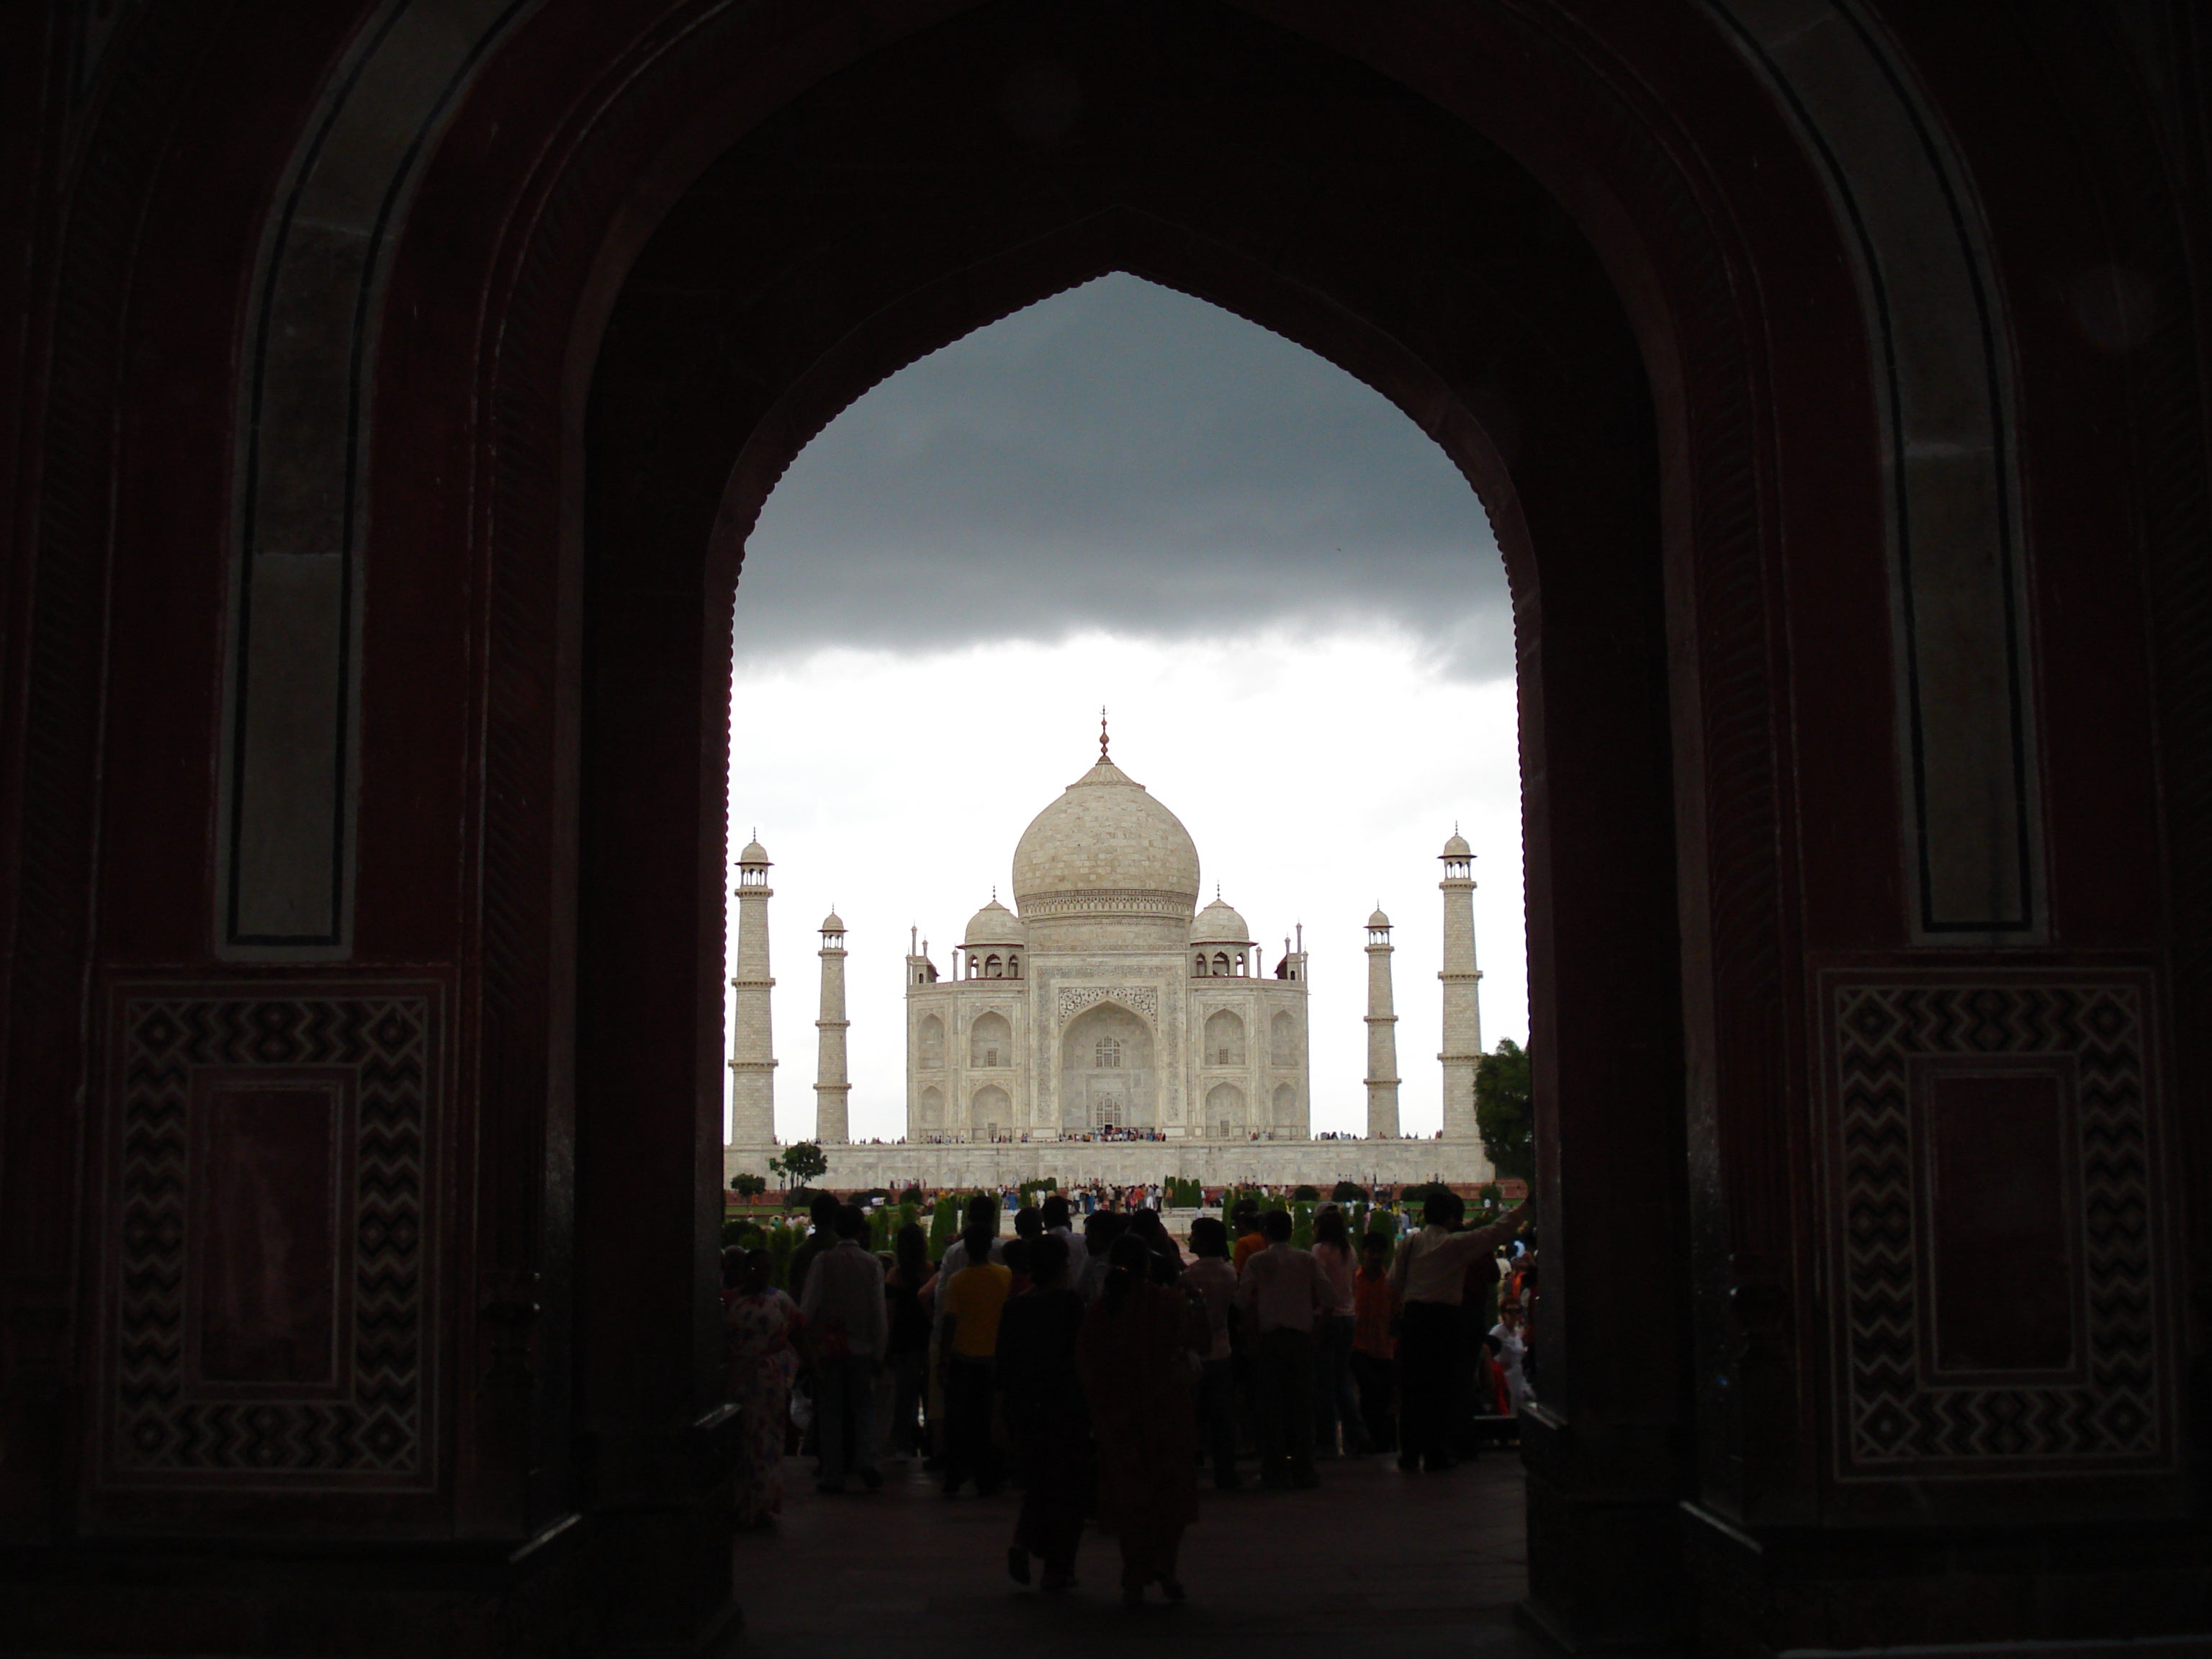 Abadía en Taj Mahal